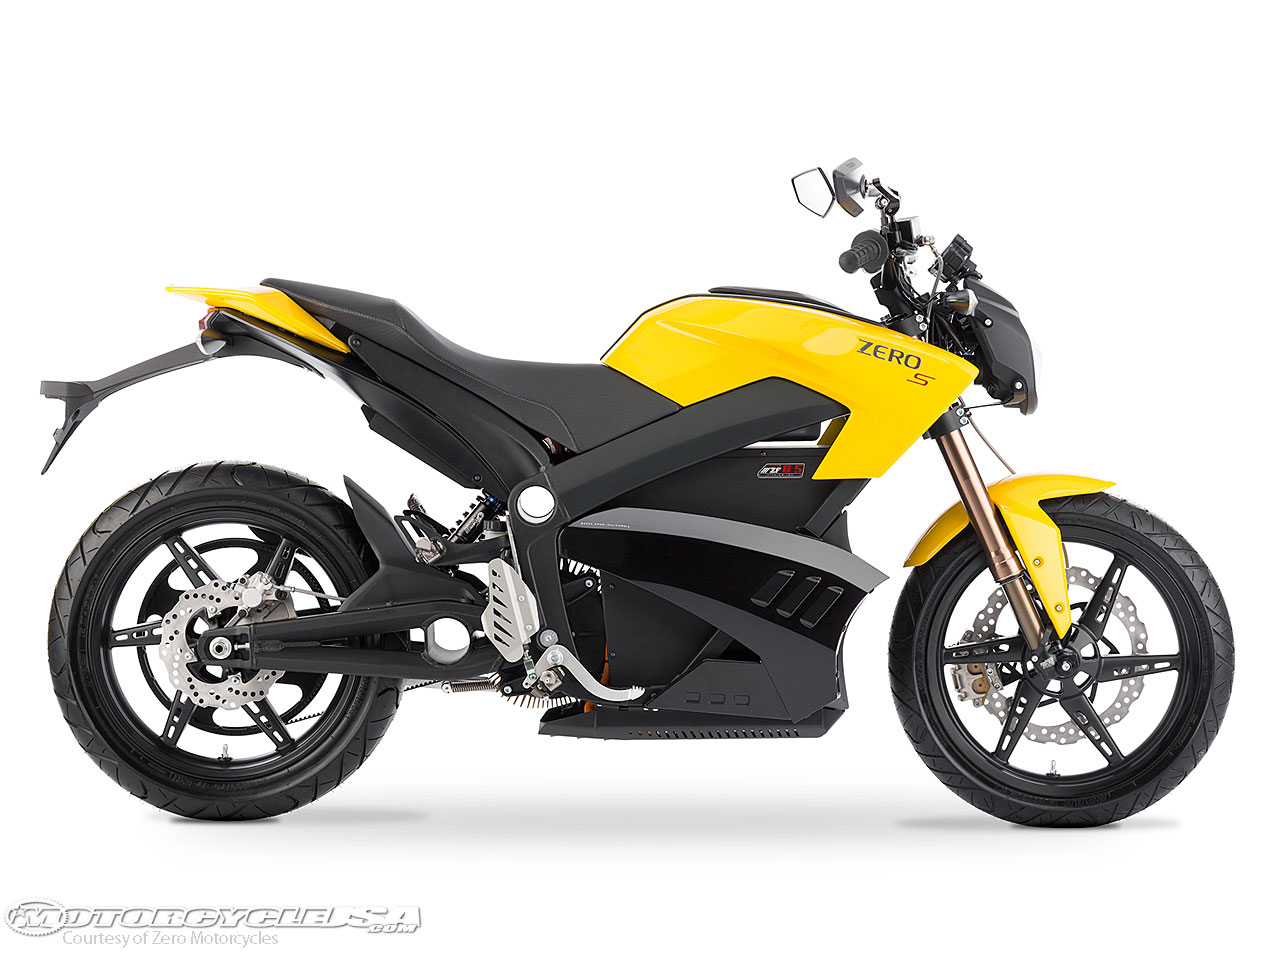 2013_zero-s_studio_yellow-r